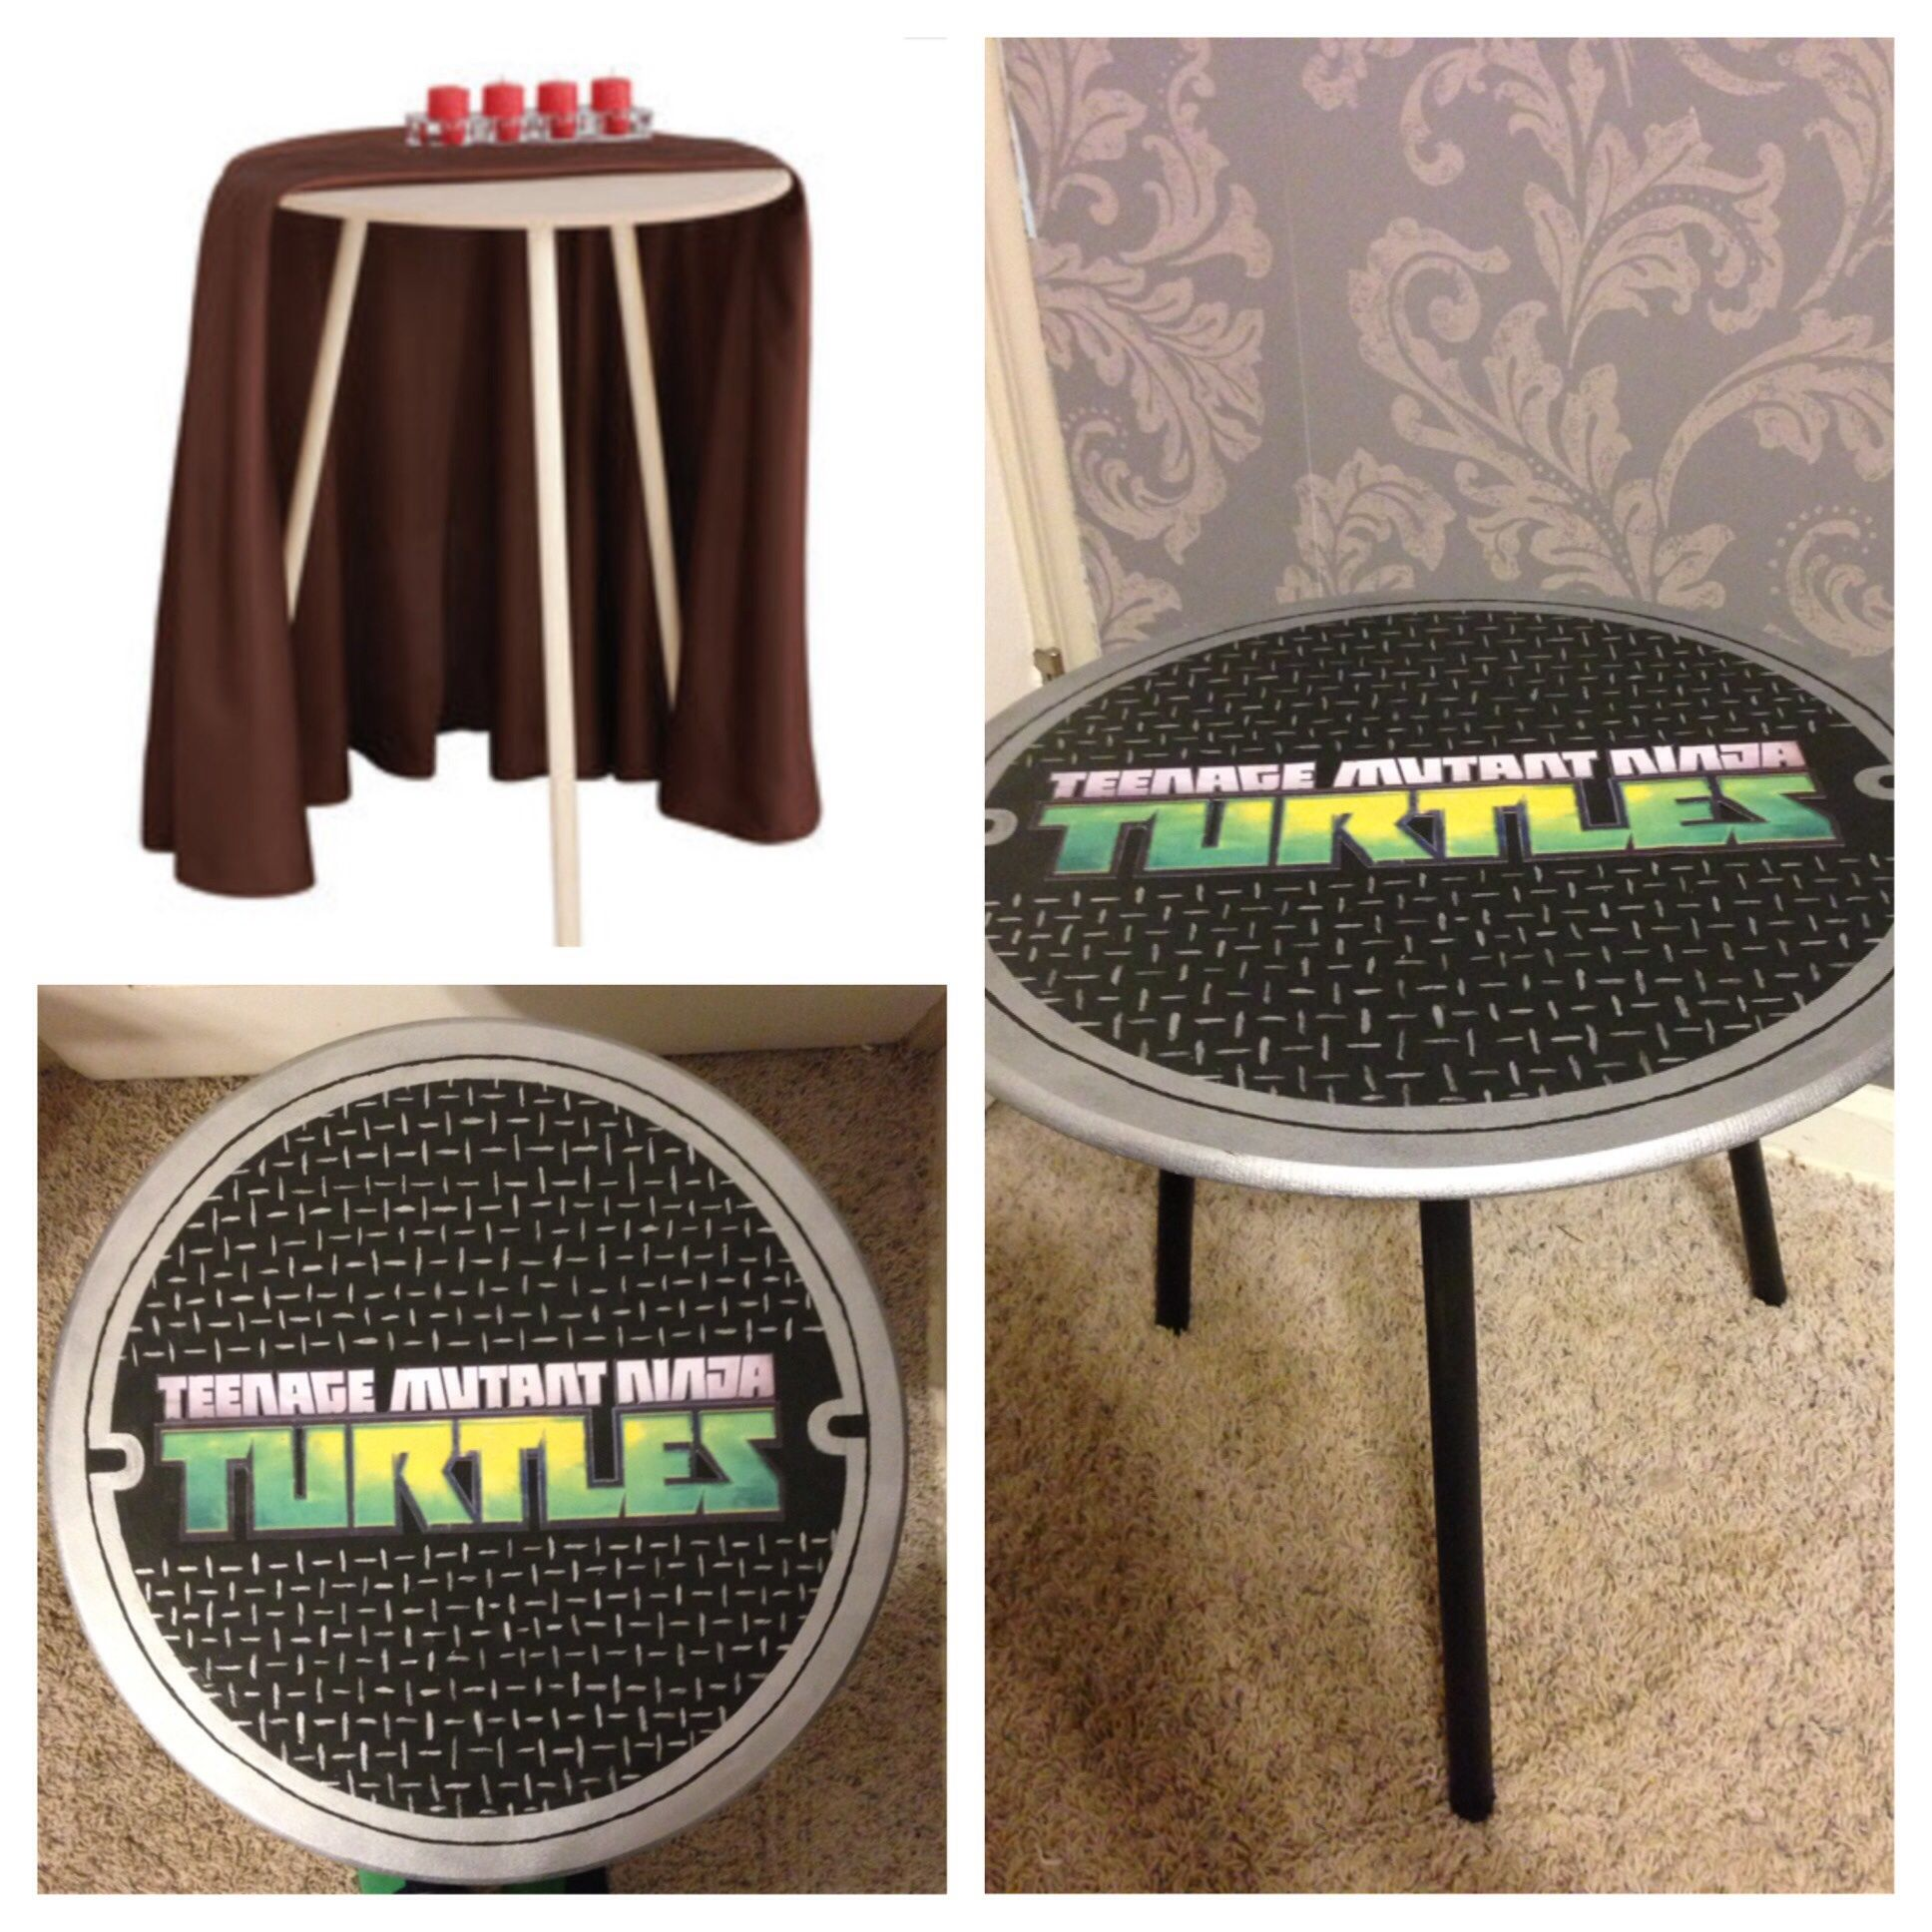 Teenage Mutant Ninja Turtles Bedroom Ideas | Ninja turtle bedroom ...